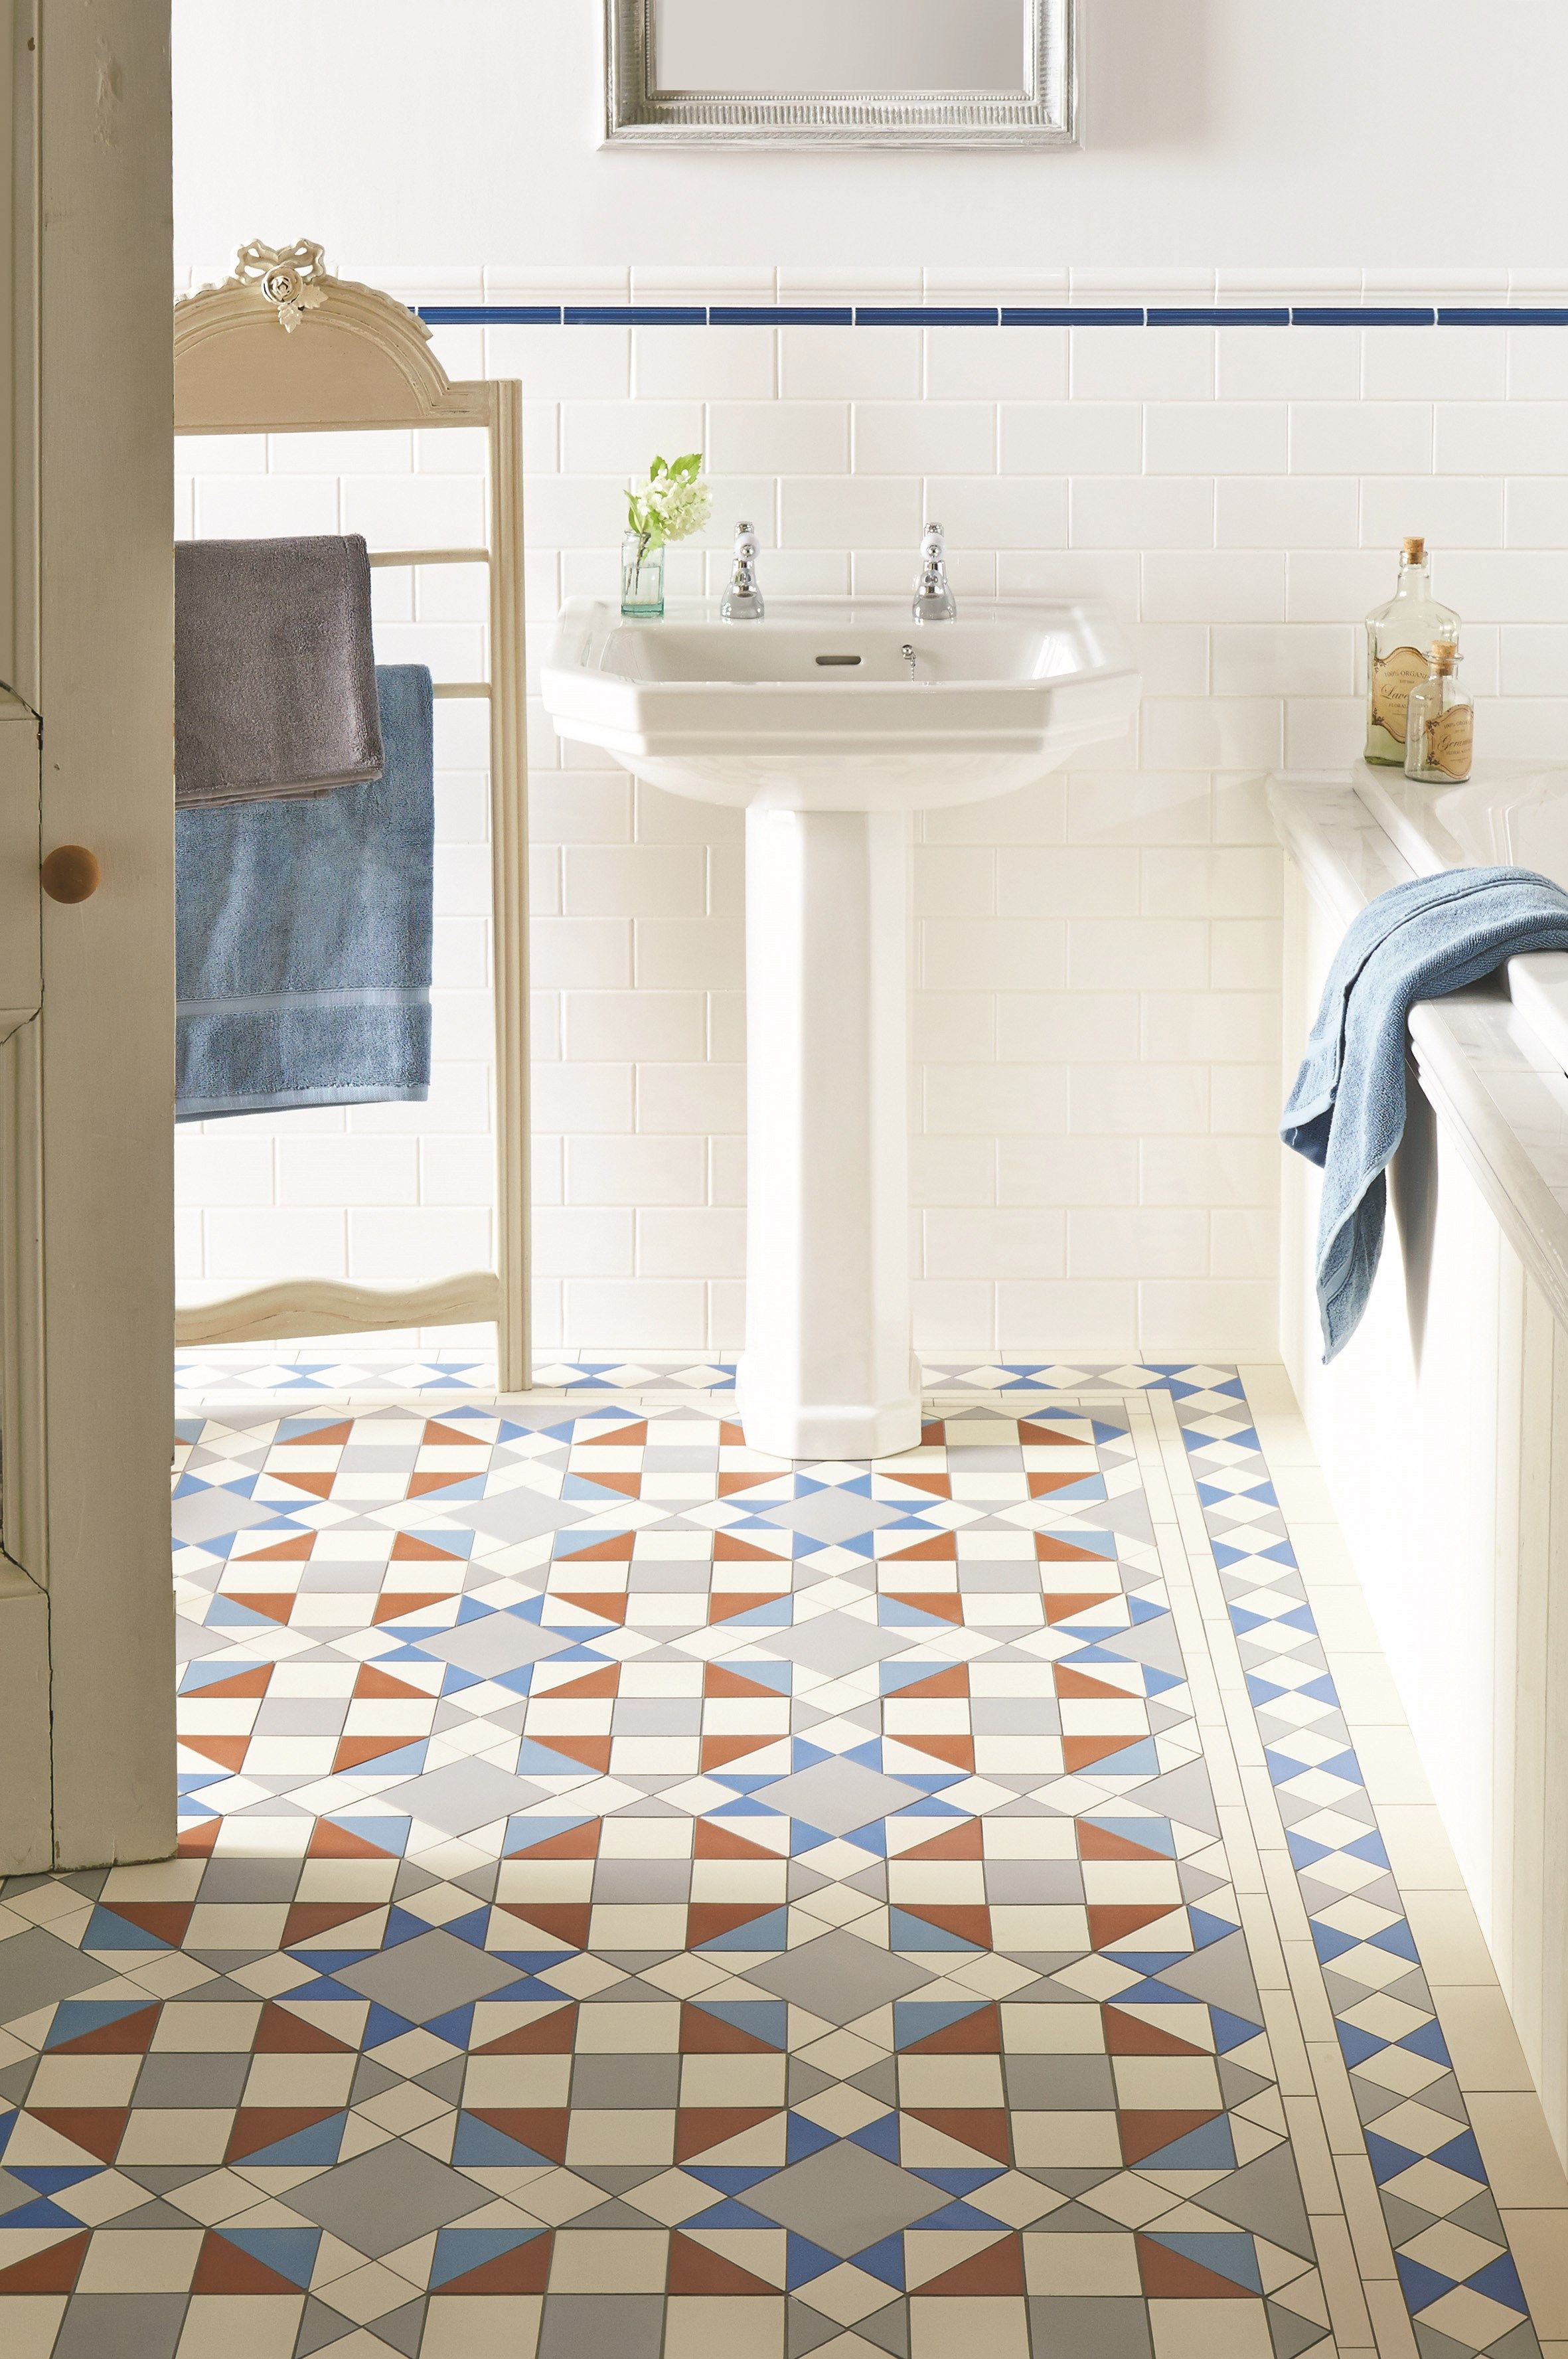 White And Greys To Replace Blue And Red Eltham Pattern With A New Shade Bright Pugin Blue Makes A Trendy Bathroom Tiles Victorian Bathroom Tile Bathroom